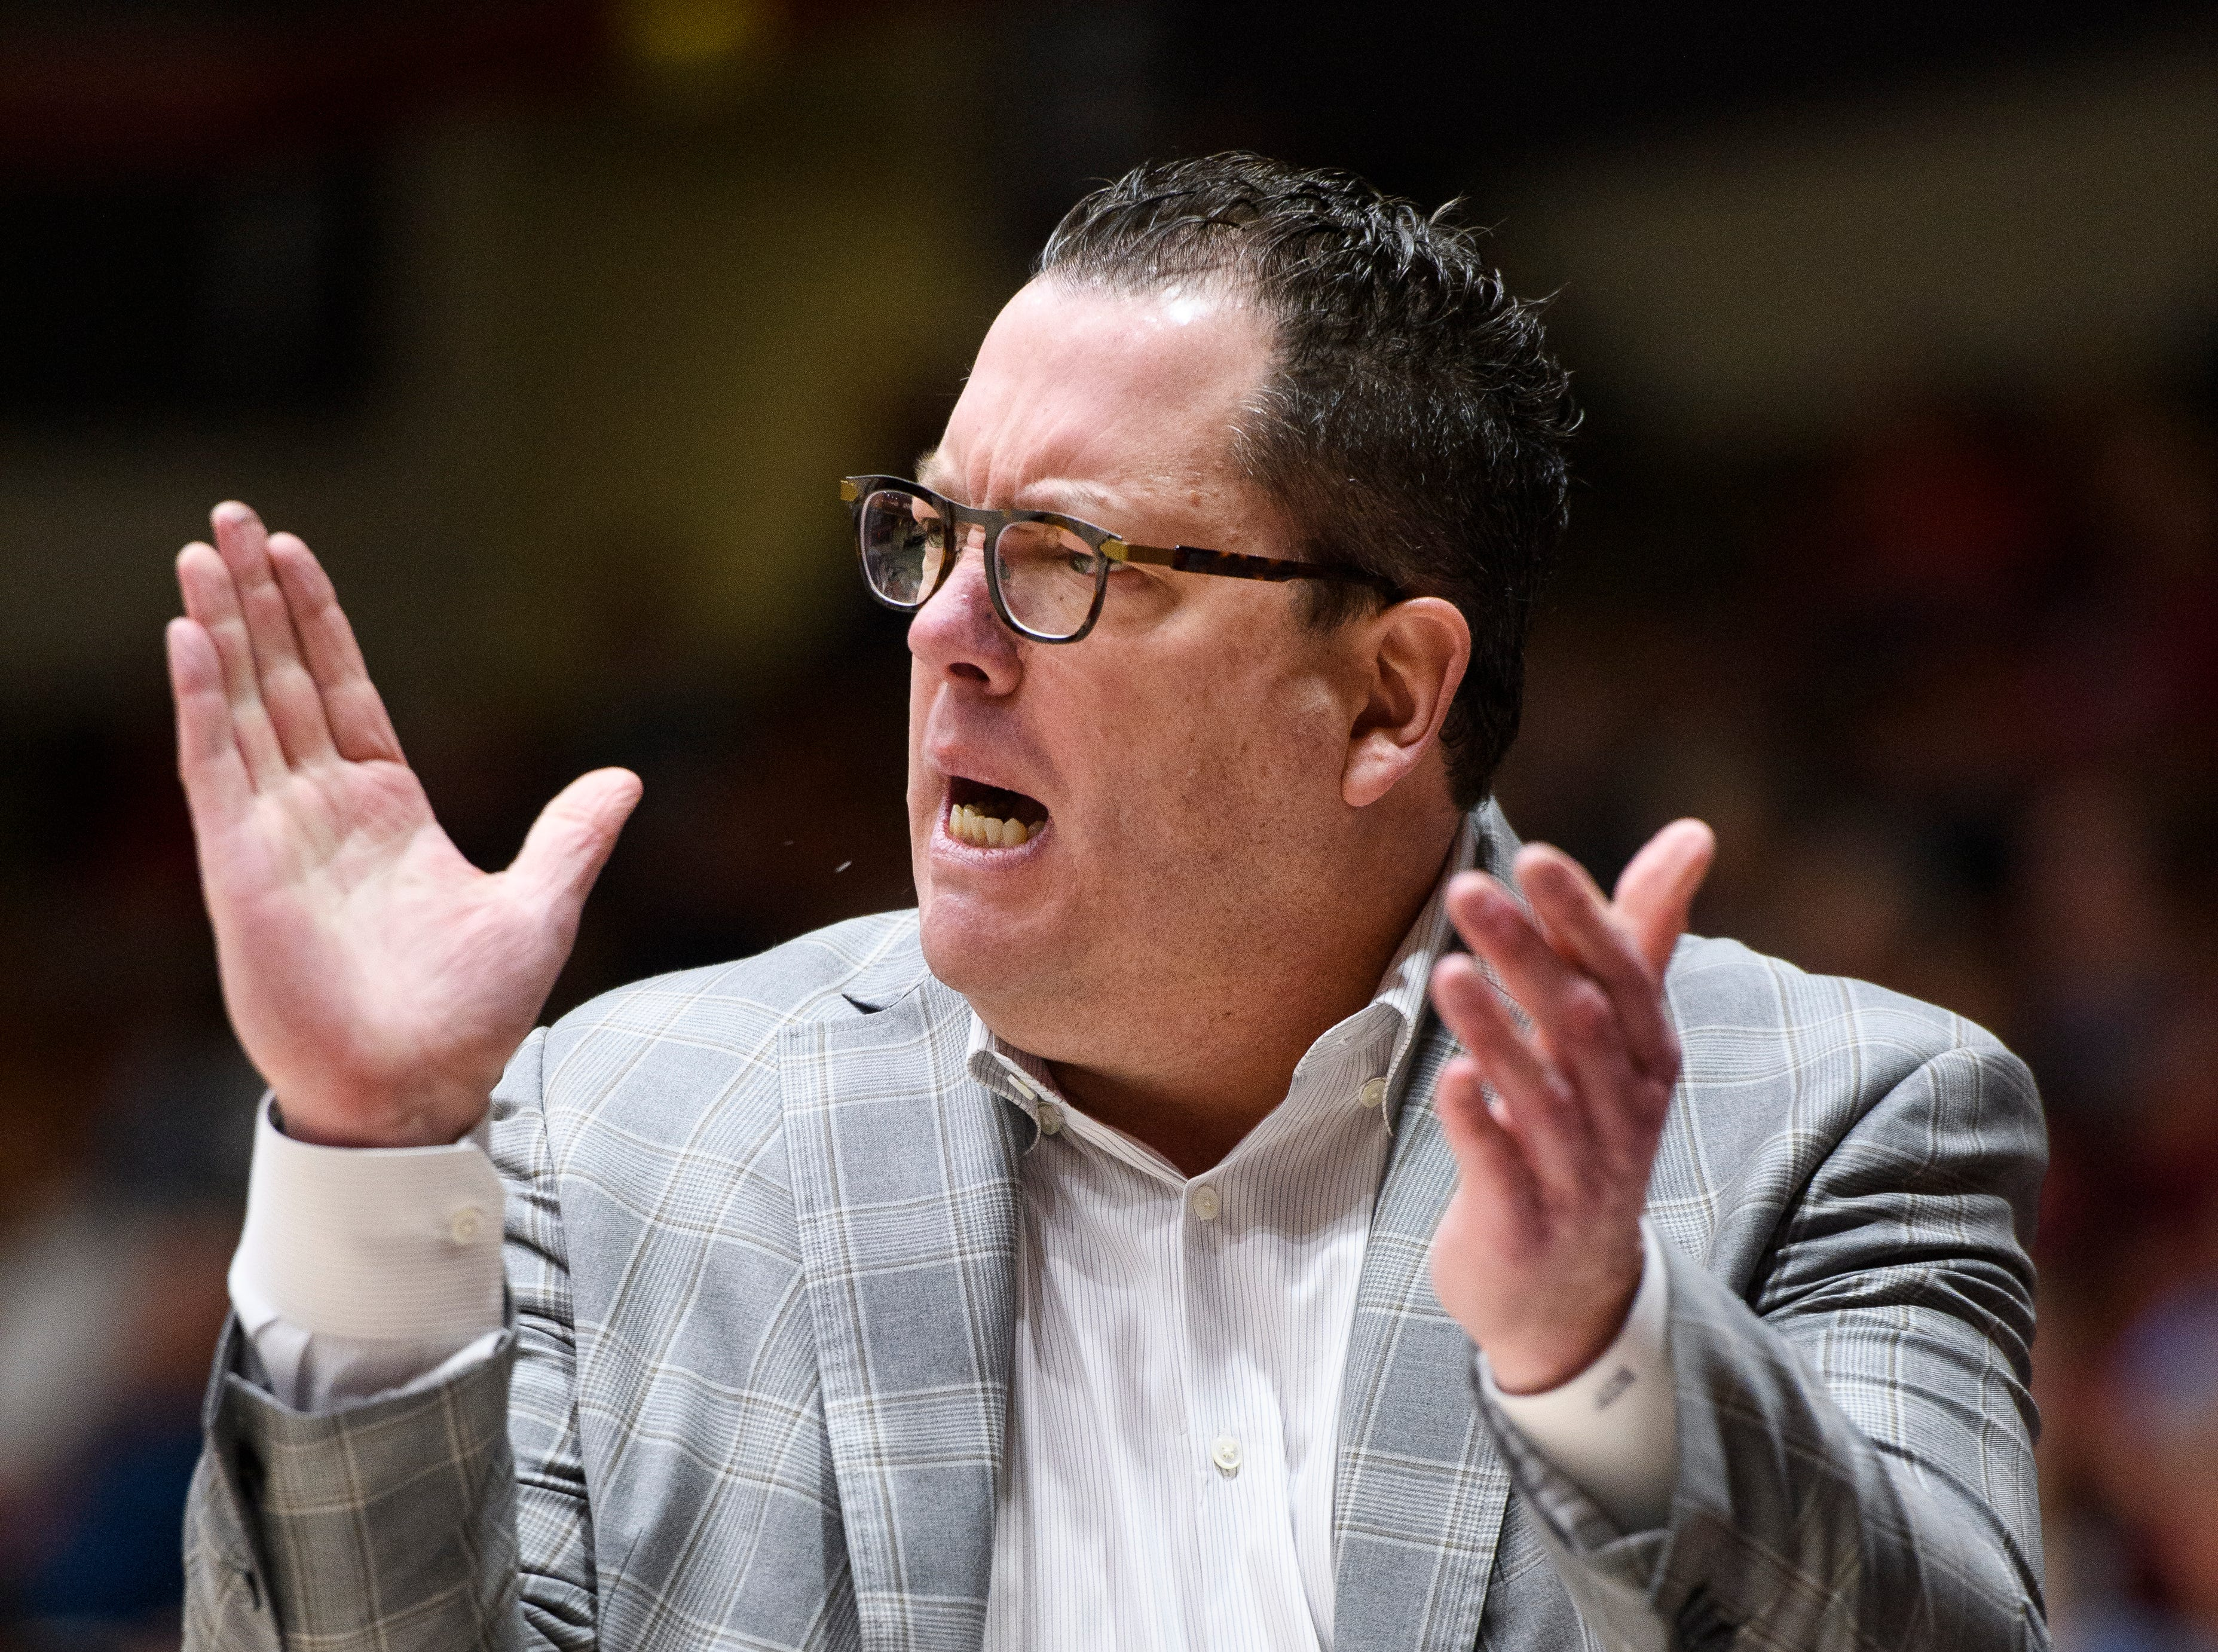 Montana State head coach Brian Fish encourages his team during the game against Southern Utah University in the America First Event Center Saturday, December 29, 2018. SUU lost, 92-62.